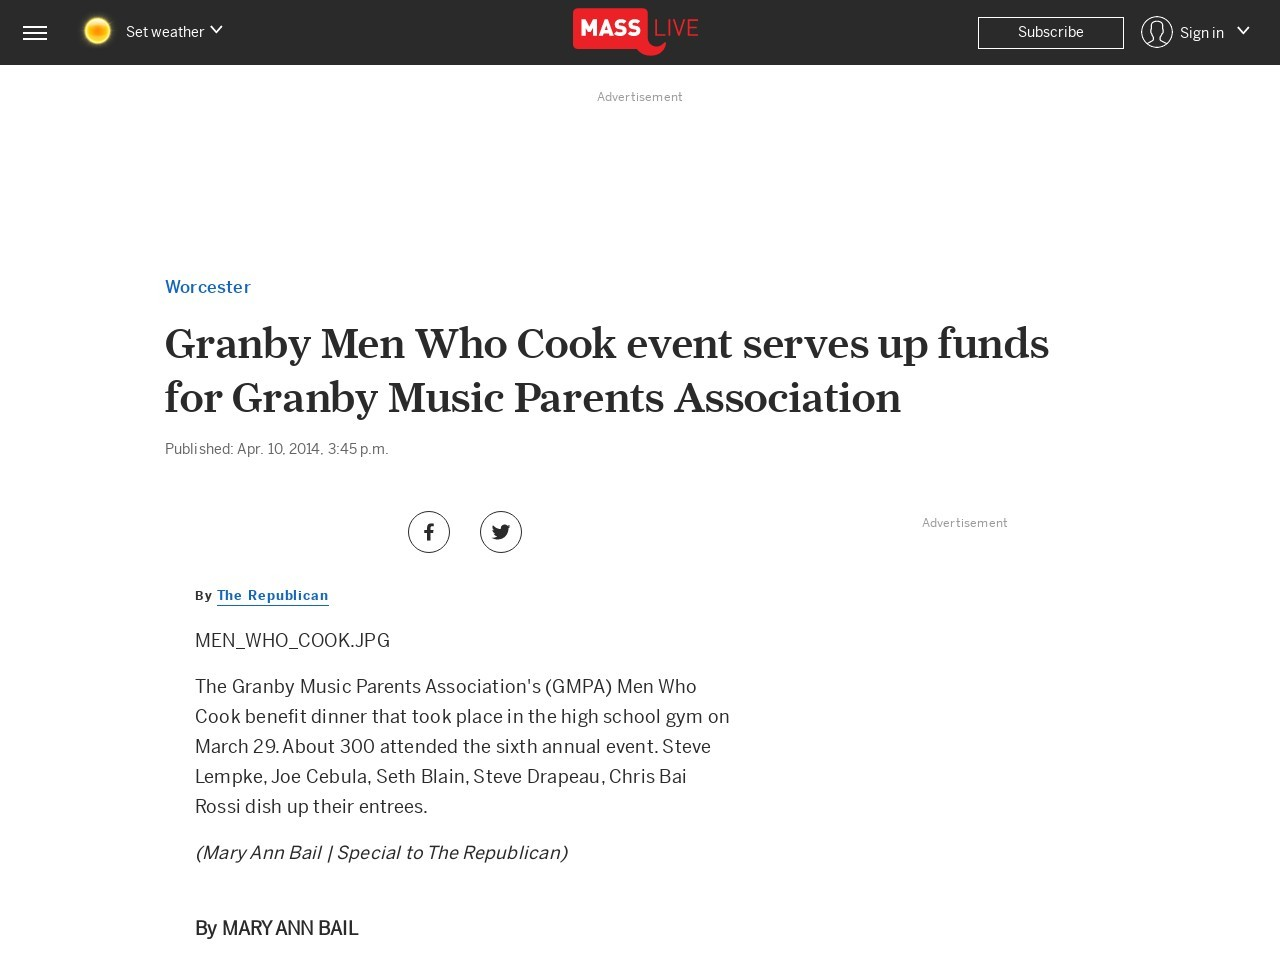 Granby Men Who Cook event serves up funds for Granby Music Parents …